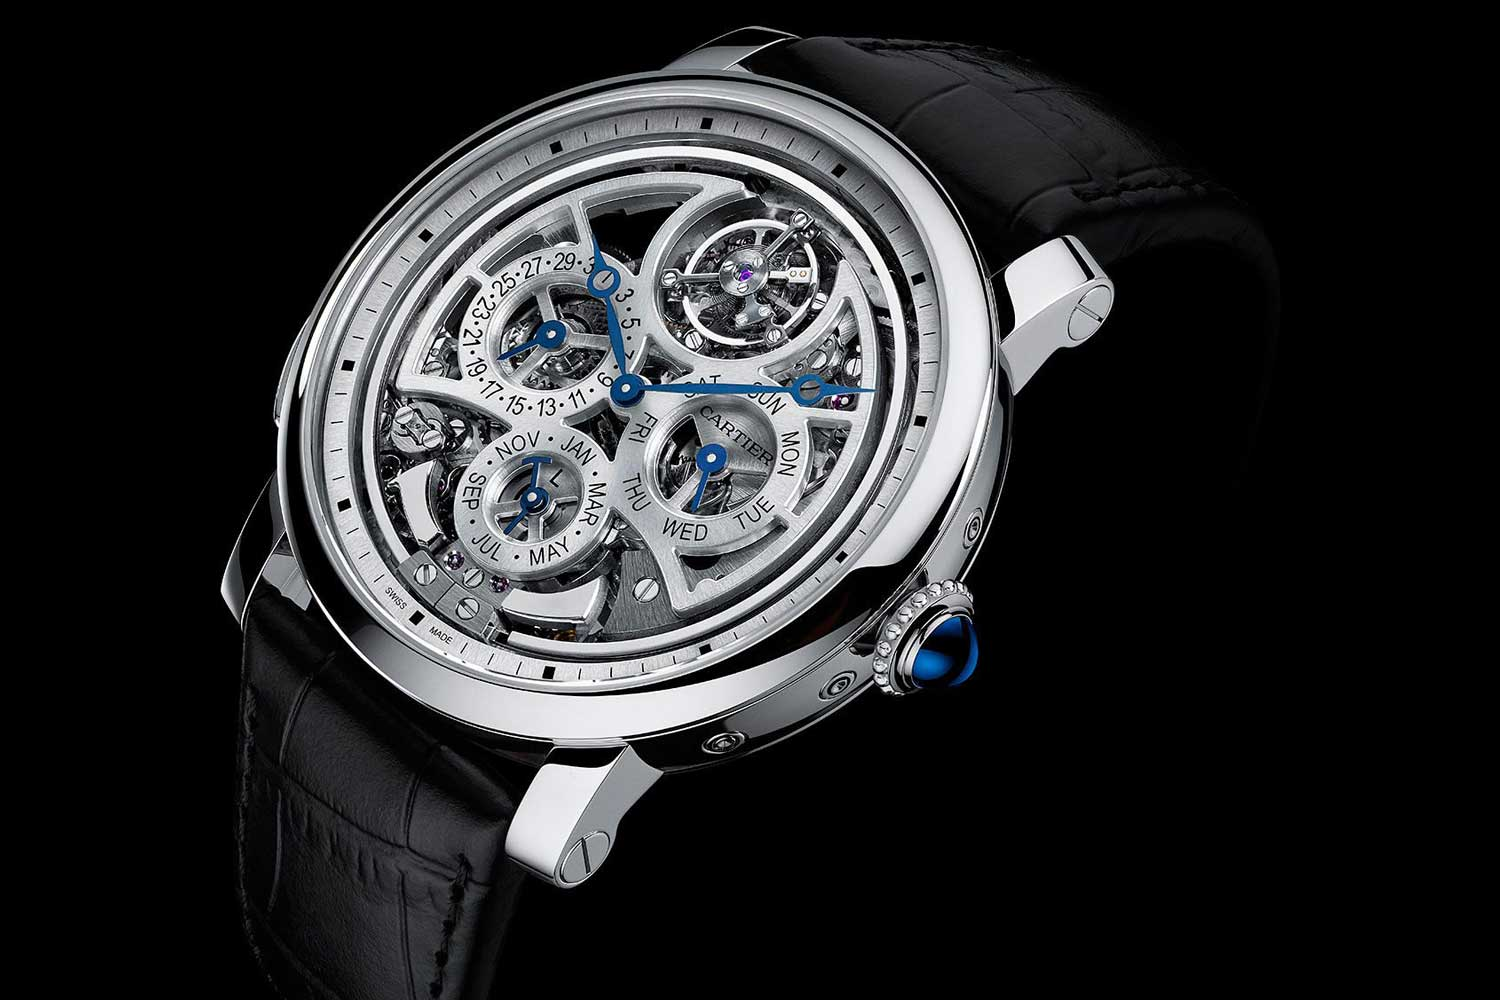 The original Rotonde de Cartier Grande Complication Skeleton, presented in SIHH 2015.